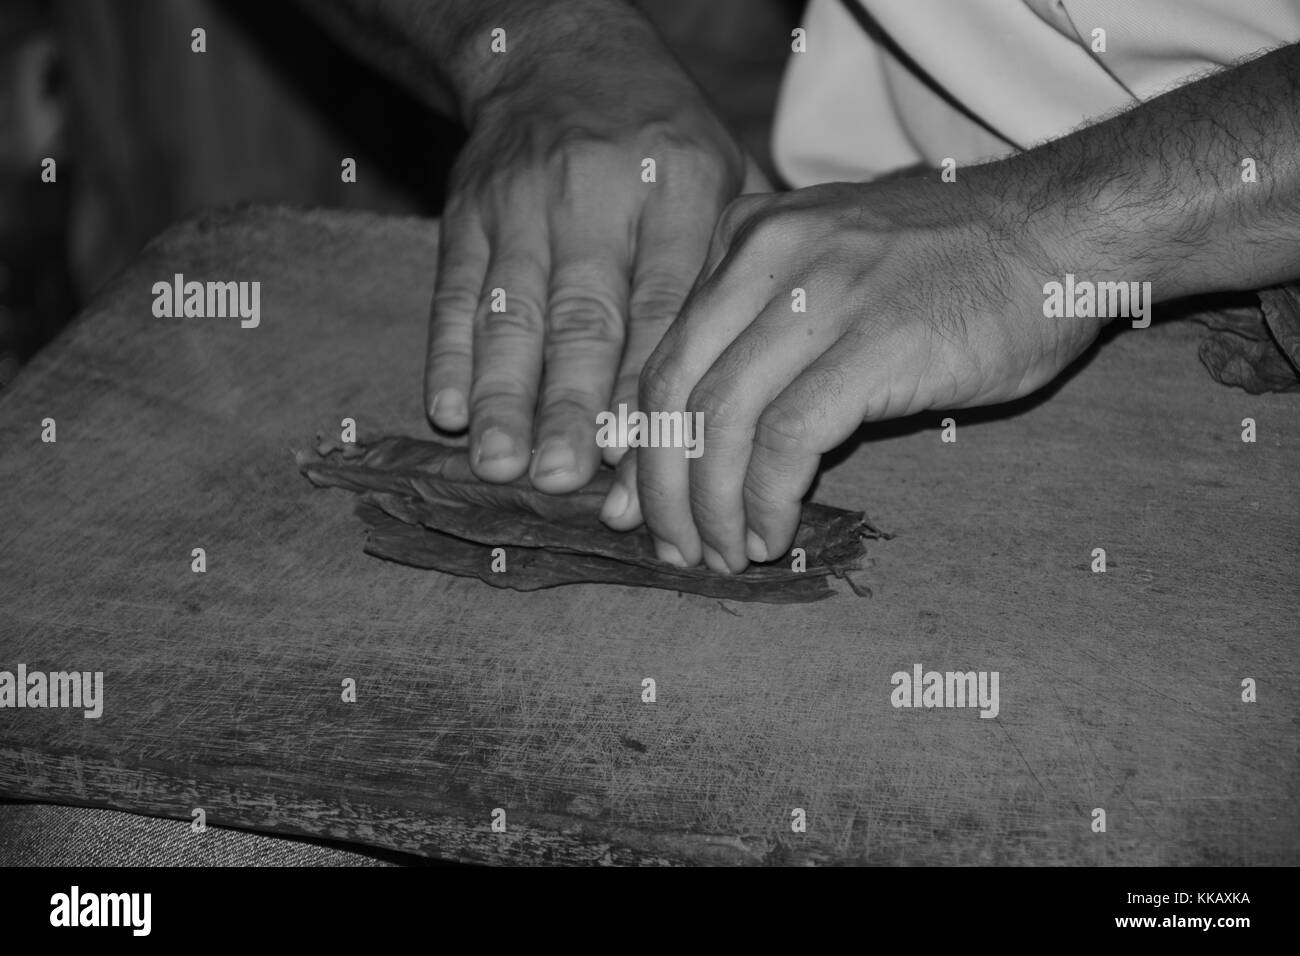 Hand rolling tobacco leaves into a cigar - Stock Image